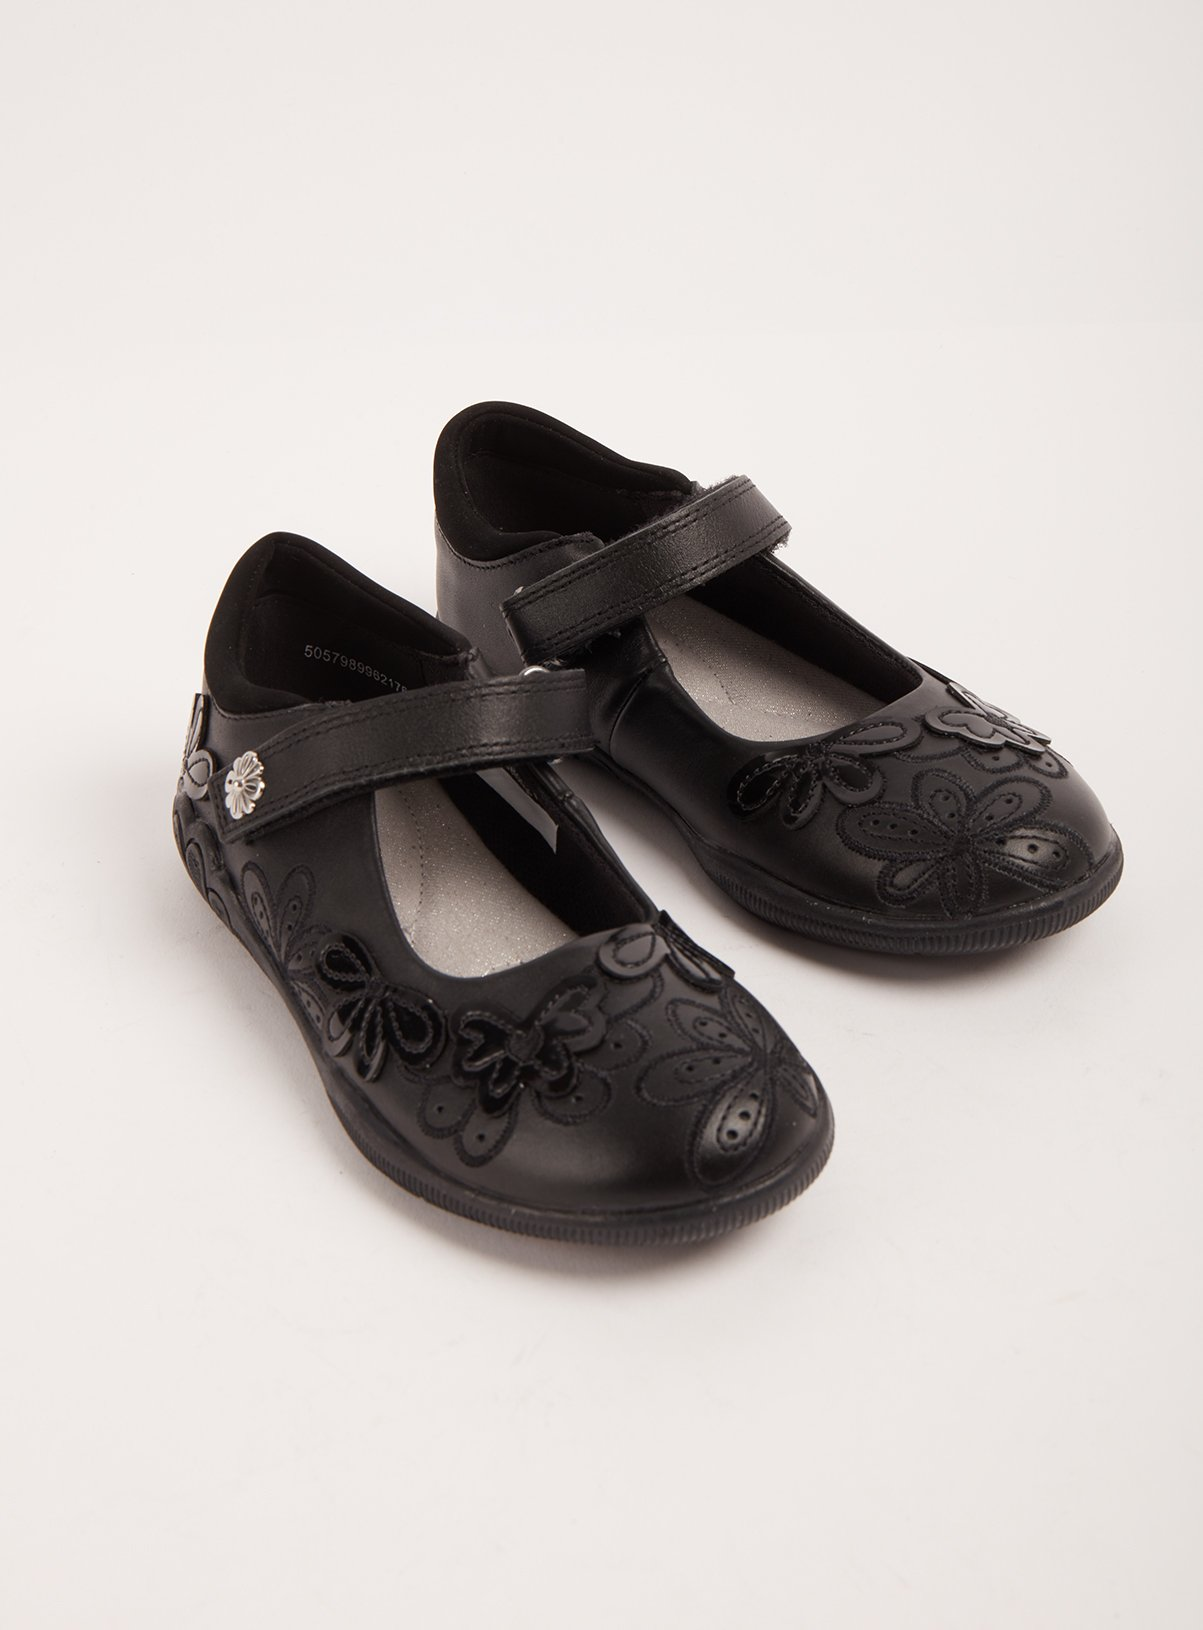 Black Floral Leather School Shoes - Half Sizes - 13.5 Infant